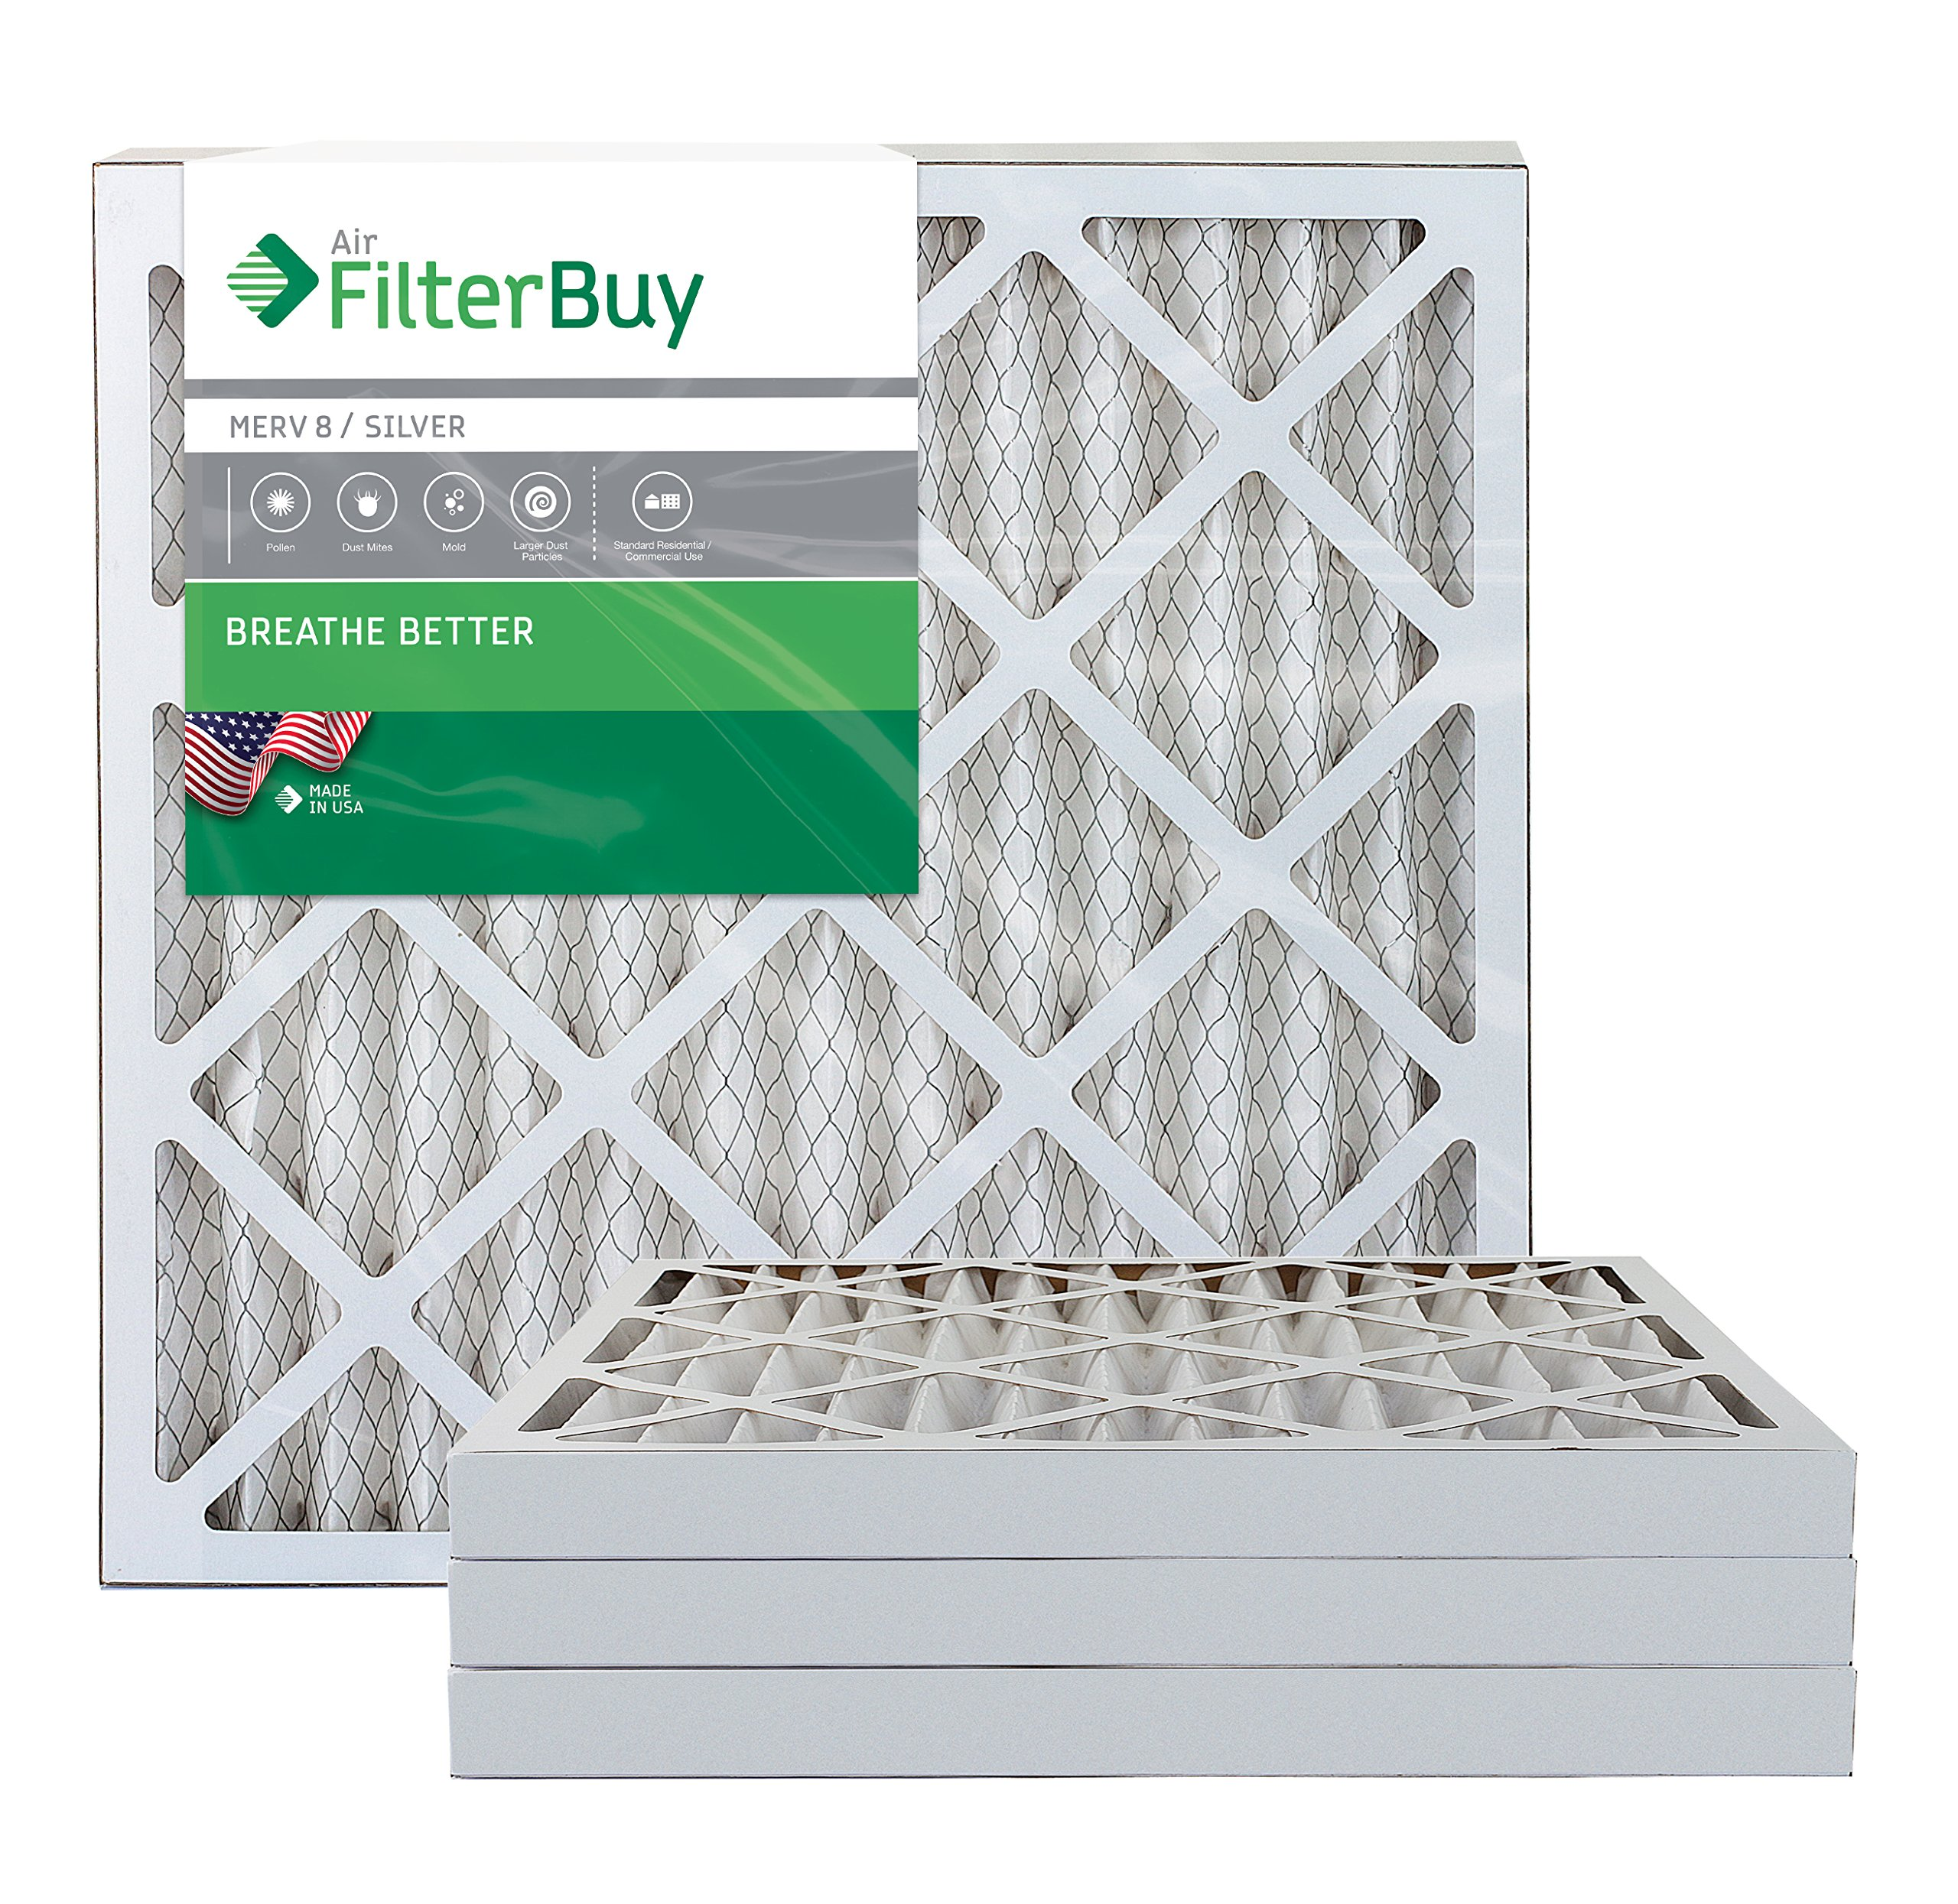 FilterBuy 20x20x2 MERV 8 Pleated AC Furnace Air Filter, (Pack of 4 Filters), 20x20x2 – Silver